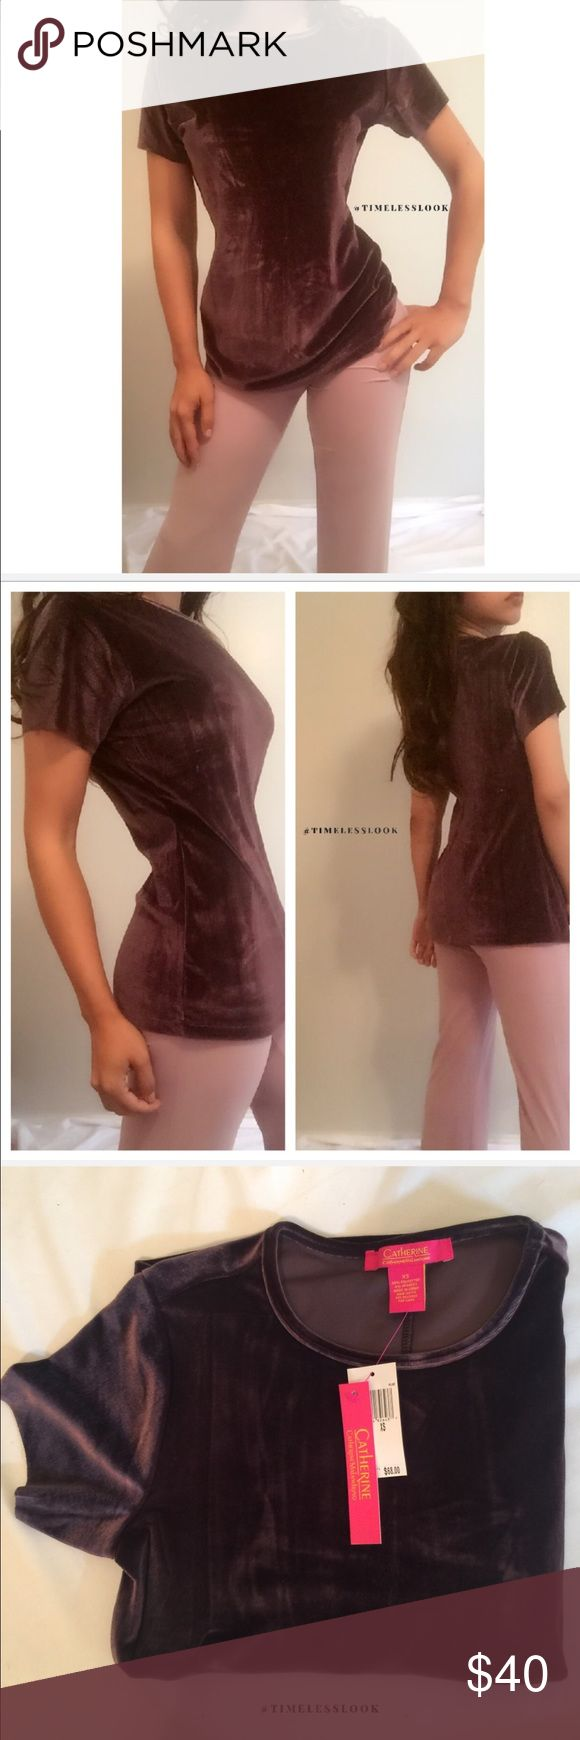 """Plum purple lush velvet tee •brand new  •ships tomorrow •brand : Catherine Malandrino NWT $68 - 2016 fall / winter   •no trades  • top quality  - form fitting fit •true to size     Model: goguios in insta 📸 (account manager) modeling XS  Please visit """"Closet Rules"""" for more info about us :) Nordstrom Tops"""